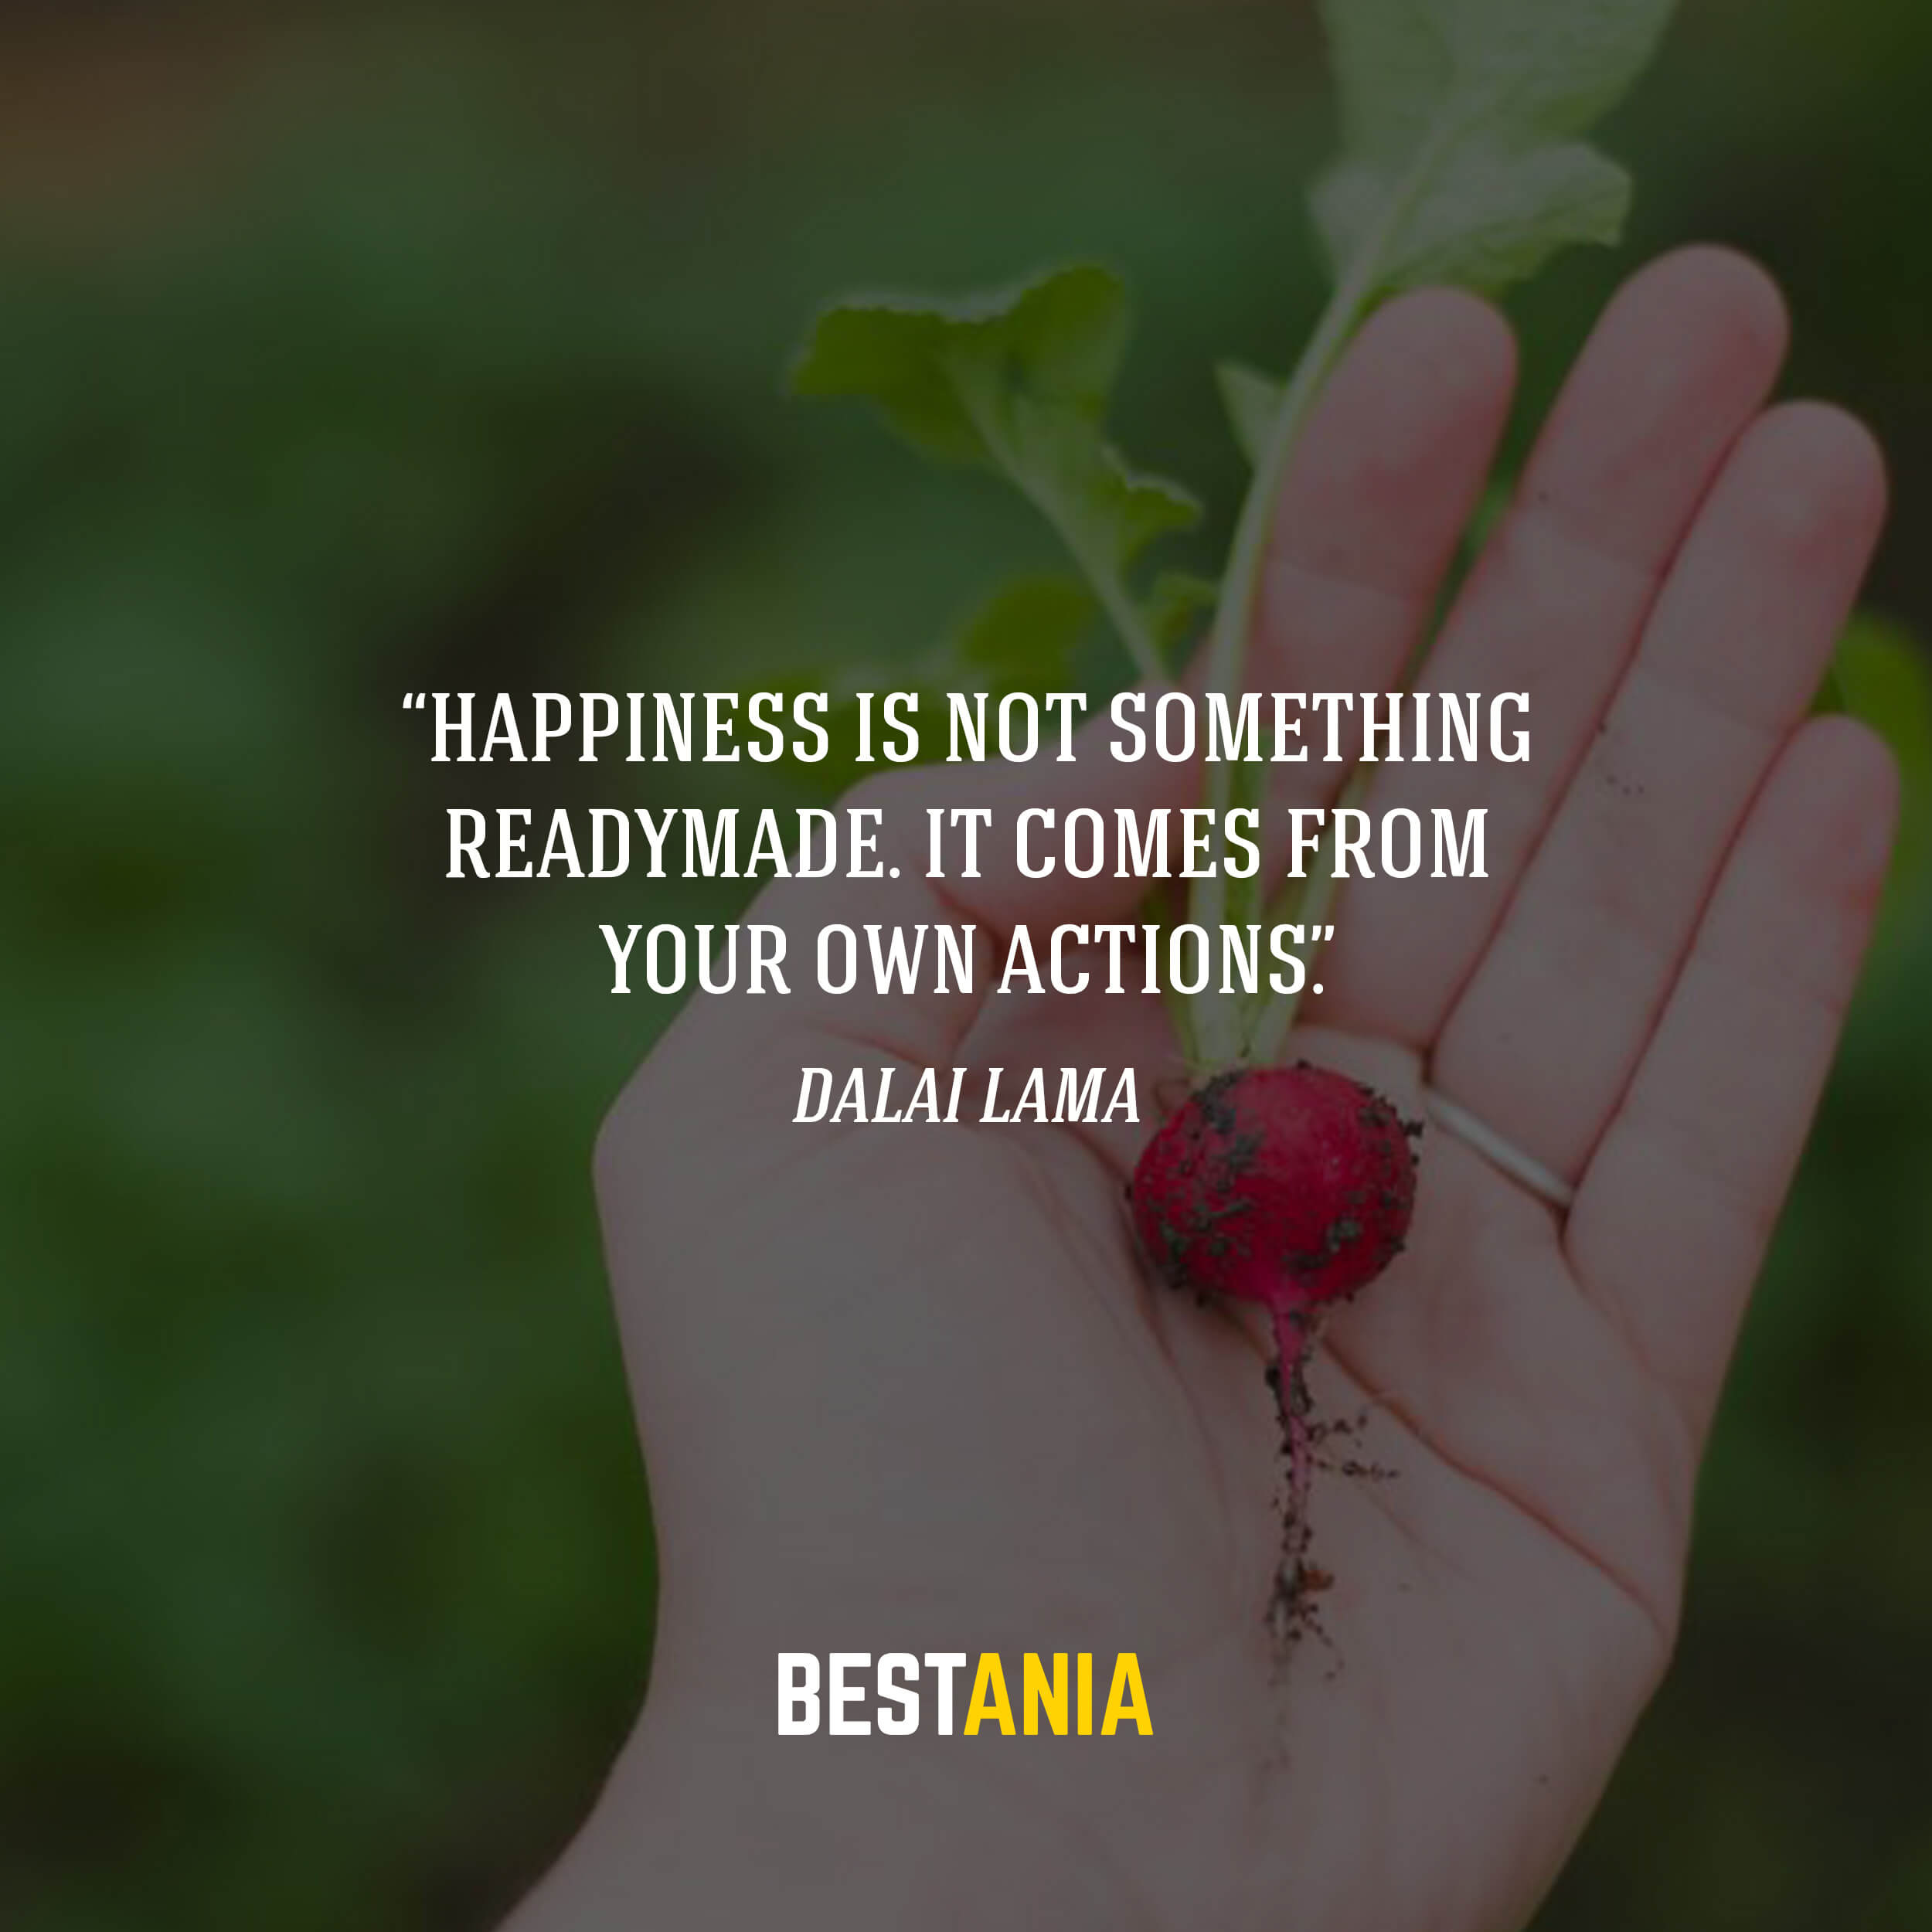 """Happiness is not something readymade. It comes from your own actions."" – Dalai Lama"